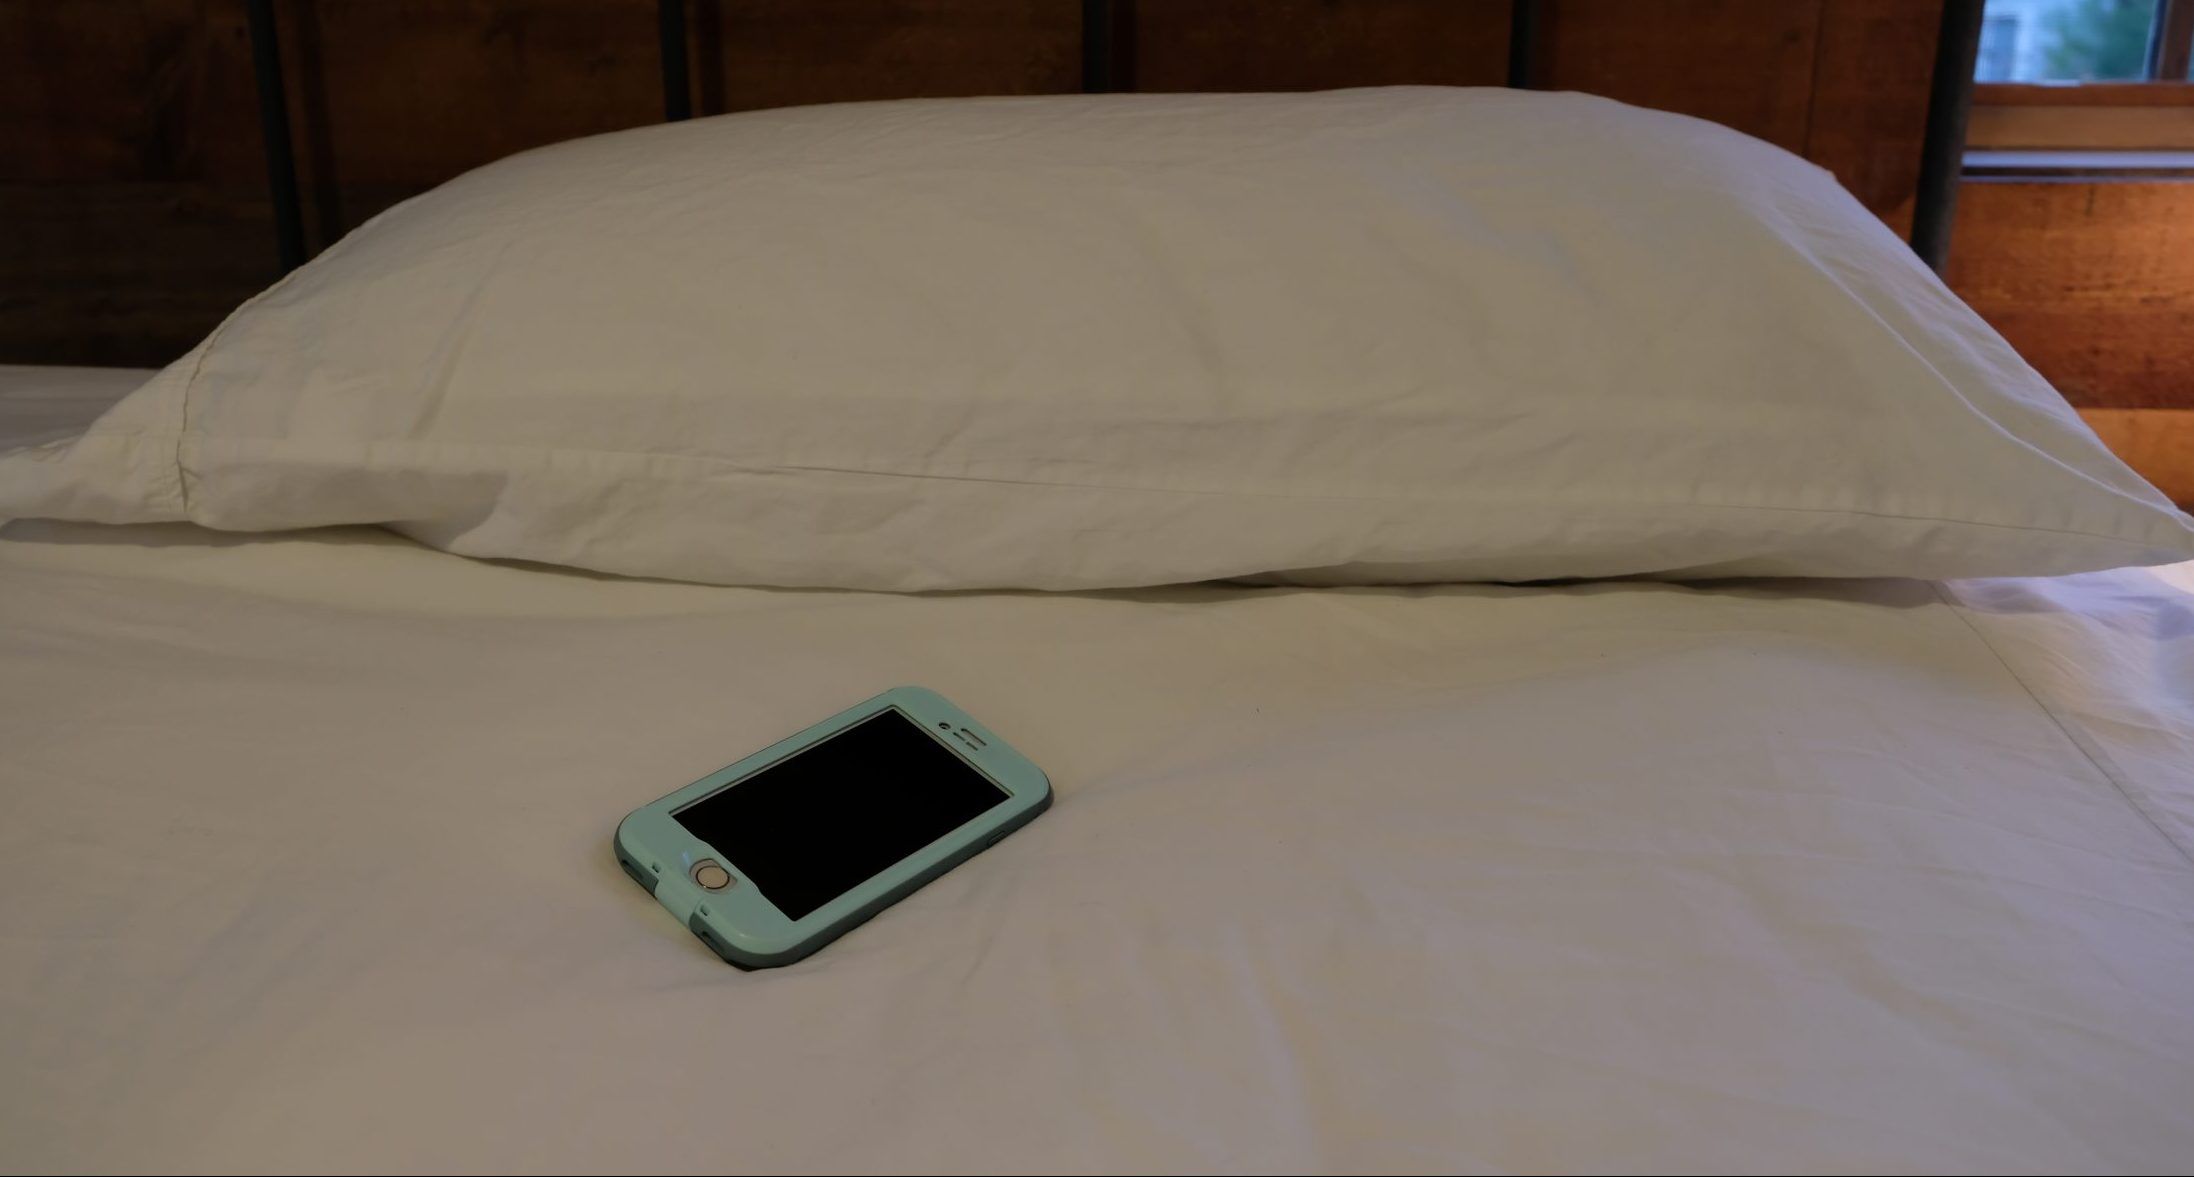 Phone on bed in DC house